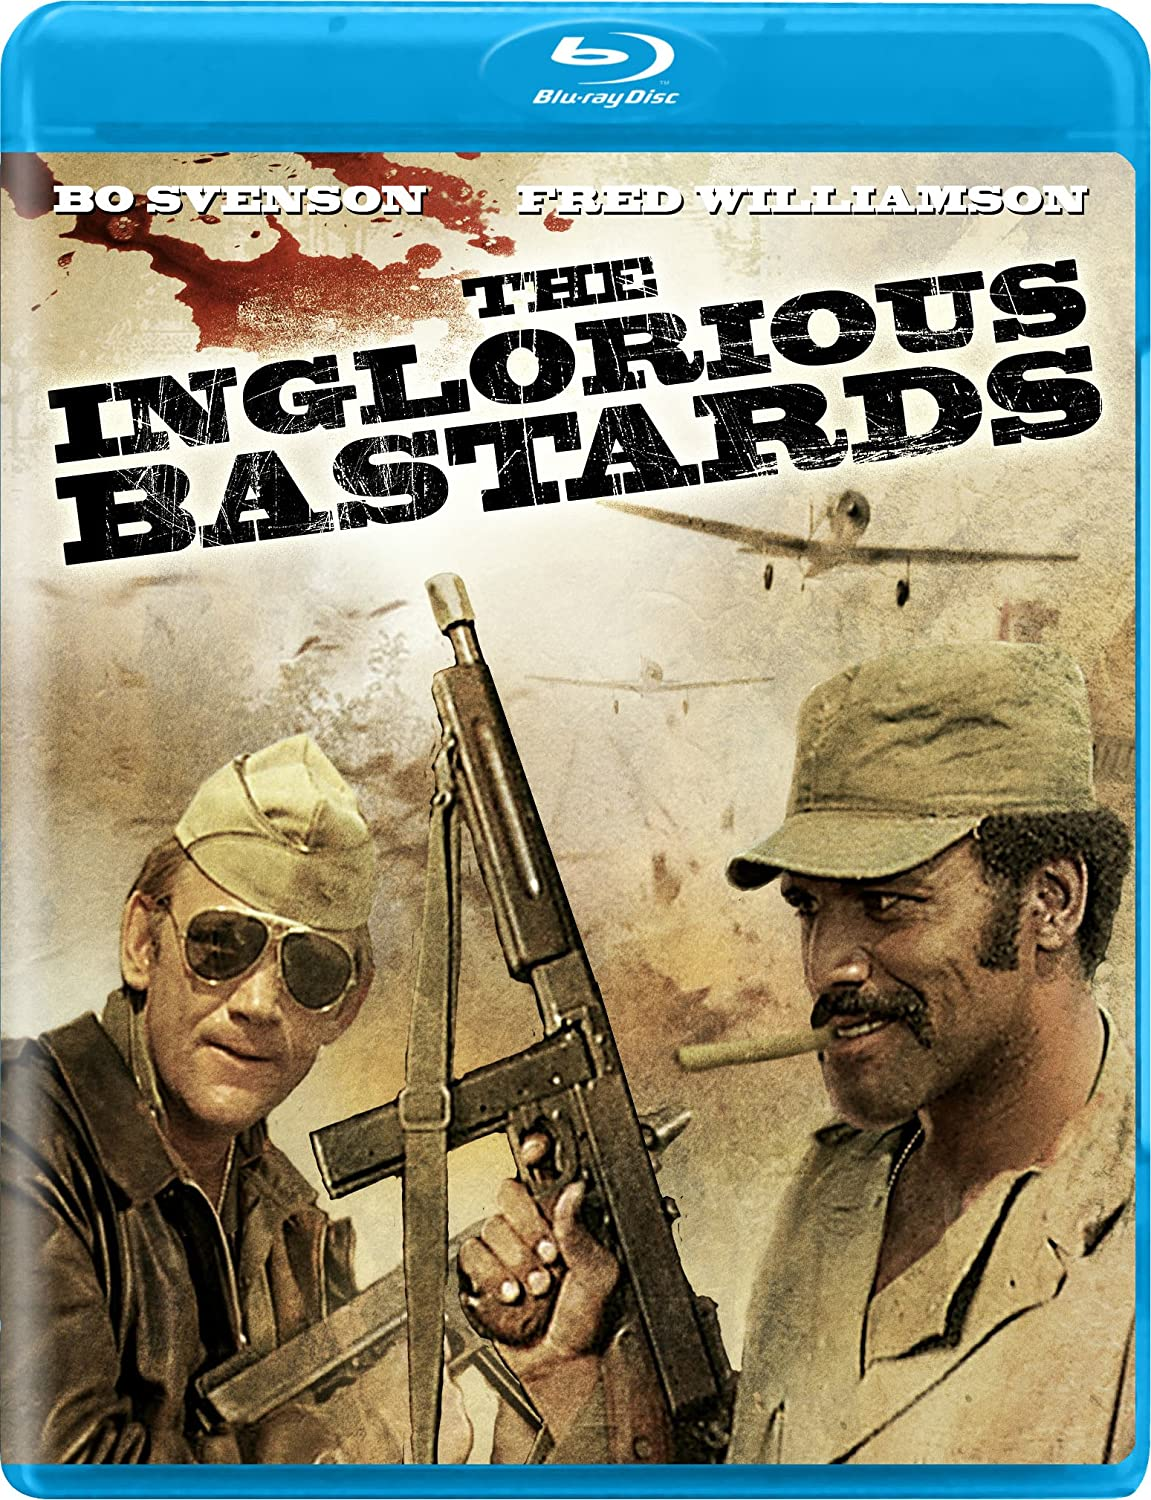 com inglorious bastards blu ray bo svenson fred com inglorious bastards blu ray bo svenson fred williamson enzo g castellari movies tv